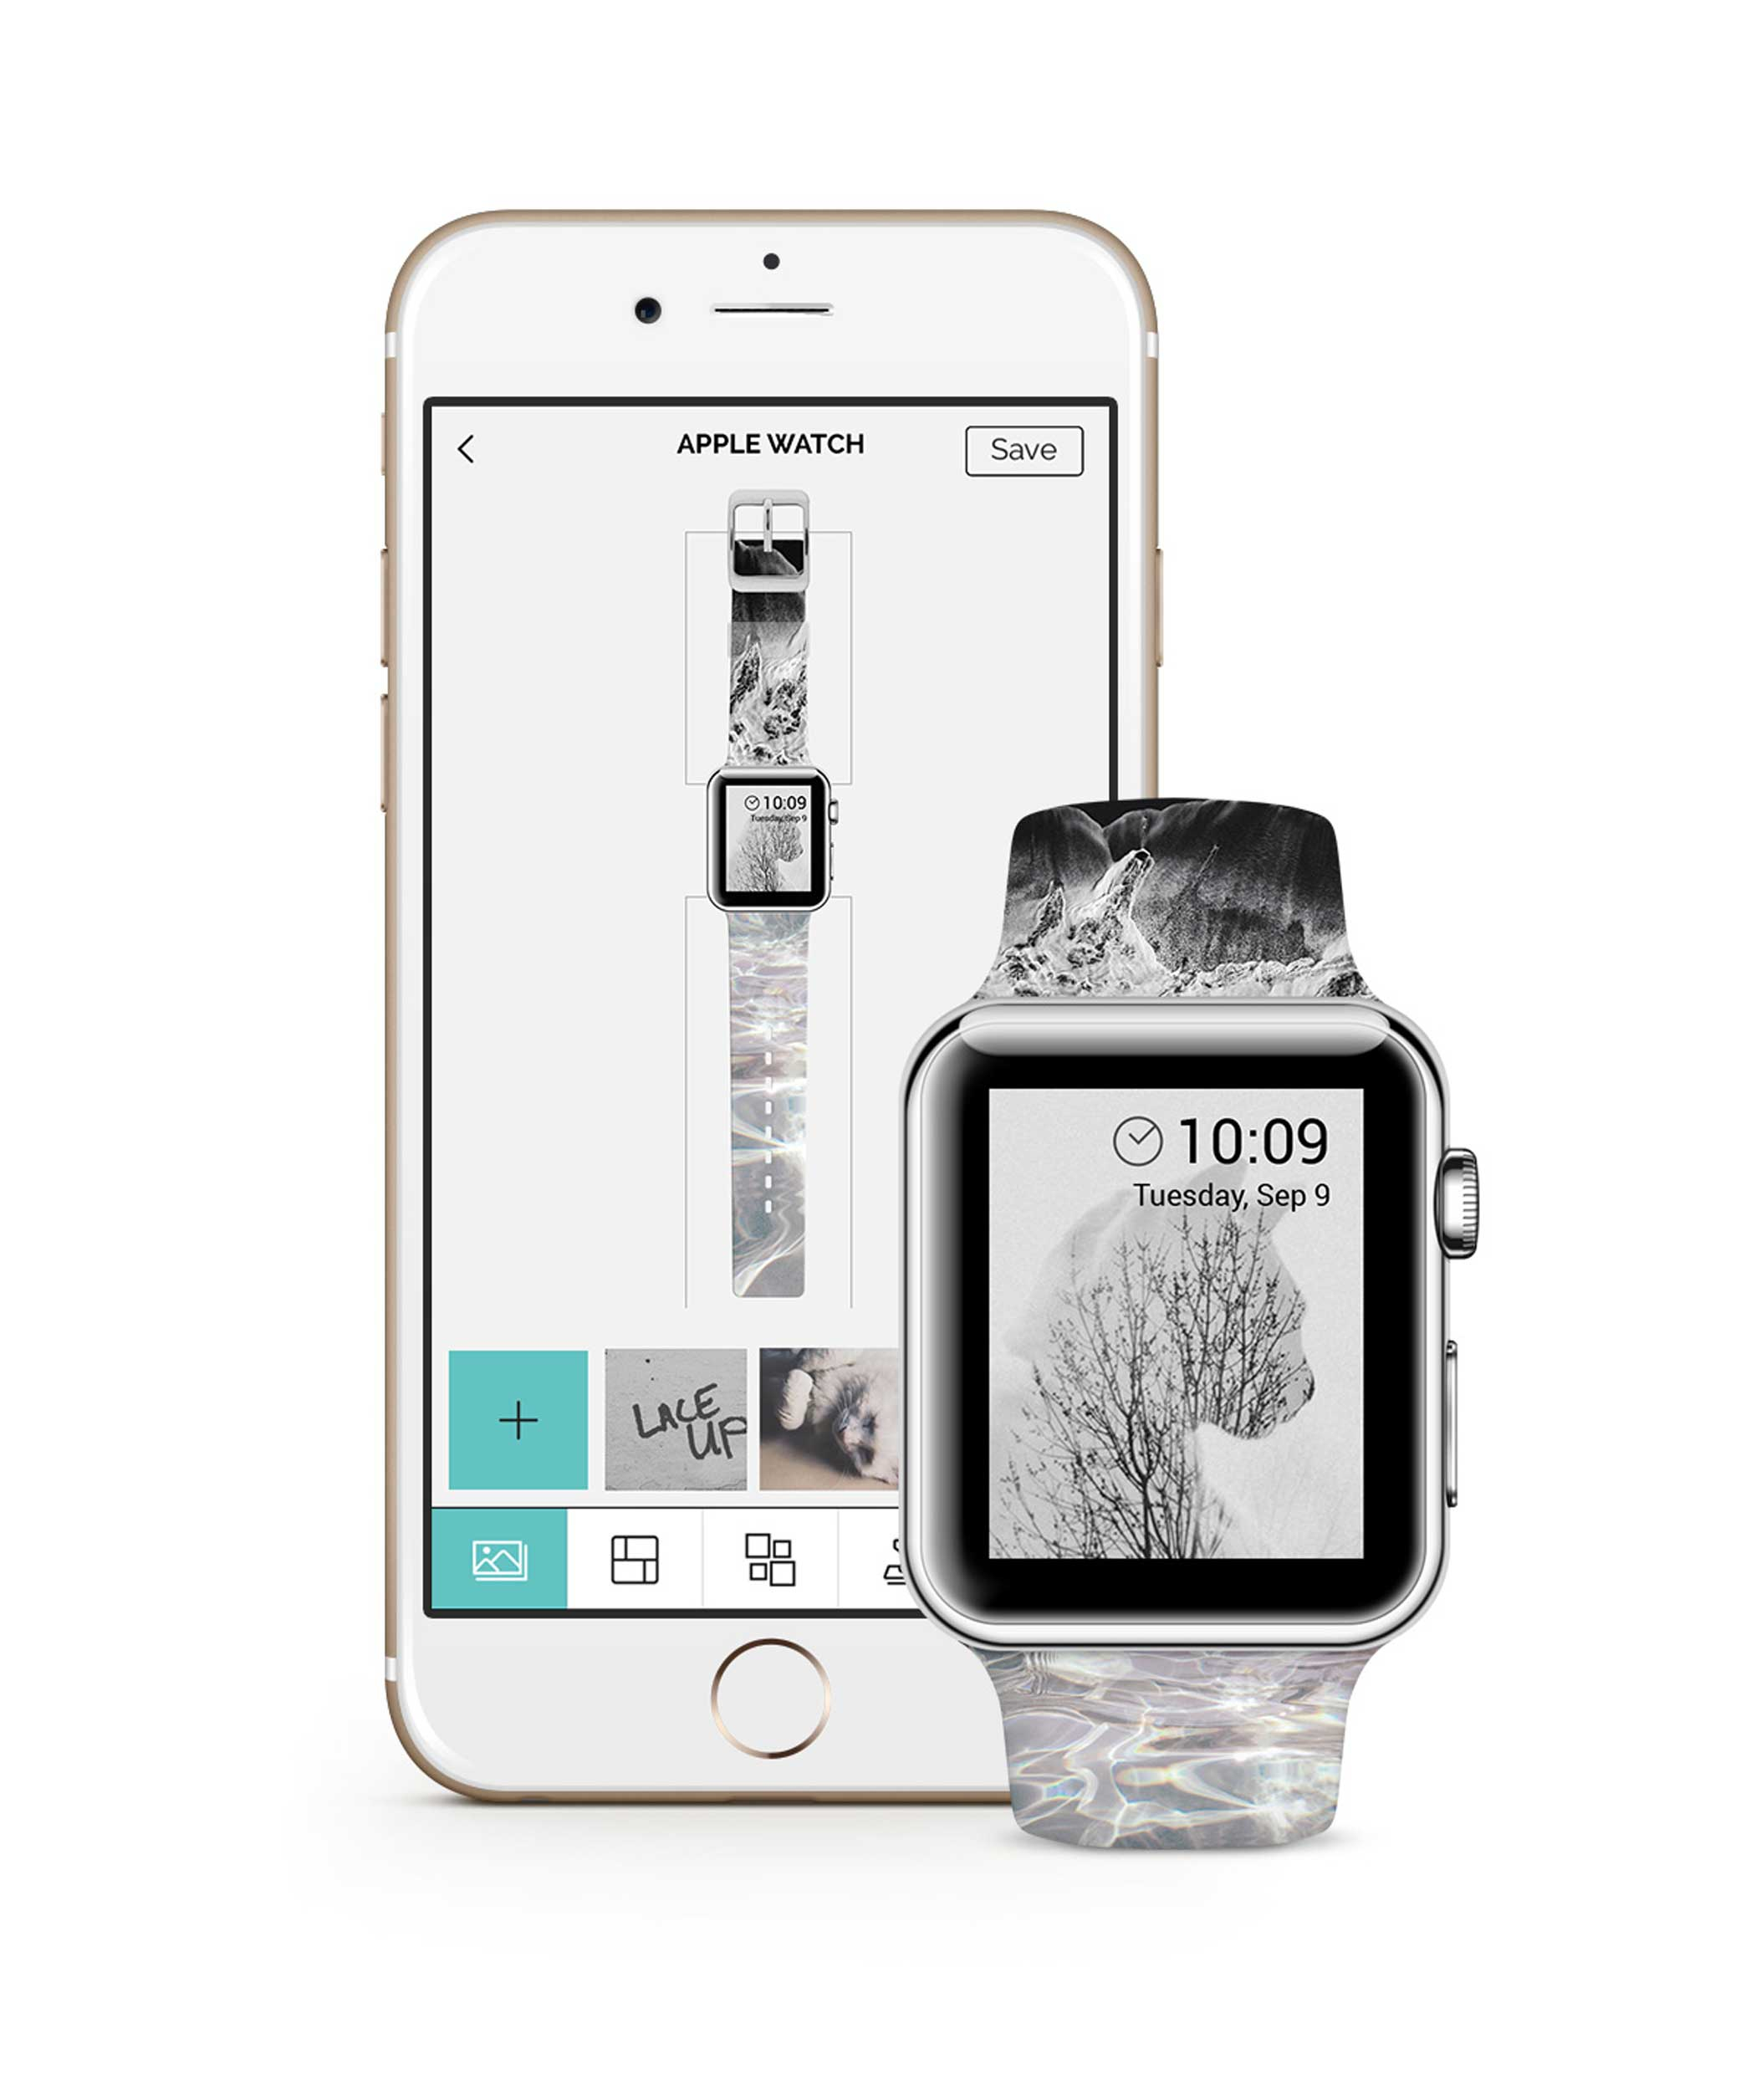 Casetify Customizable Watch Band If Apple's watch band selection doesn't fit your tastes, Casetify allows you to create your own for $50 — you can even print your own selfies on the band. As its name suggests, Casetify also sells custom designed iPhone cases.